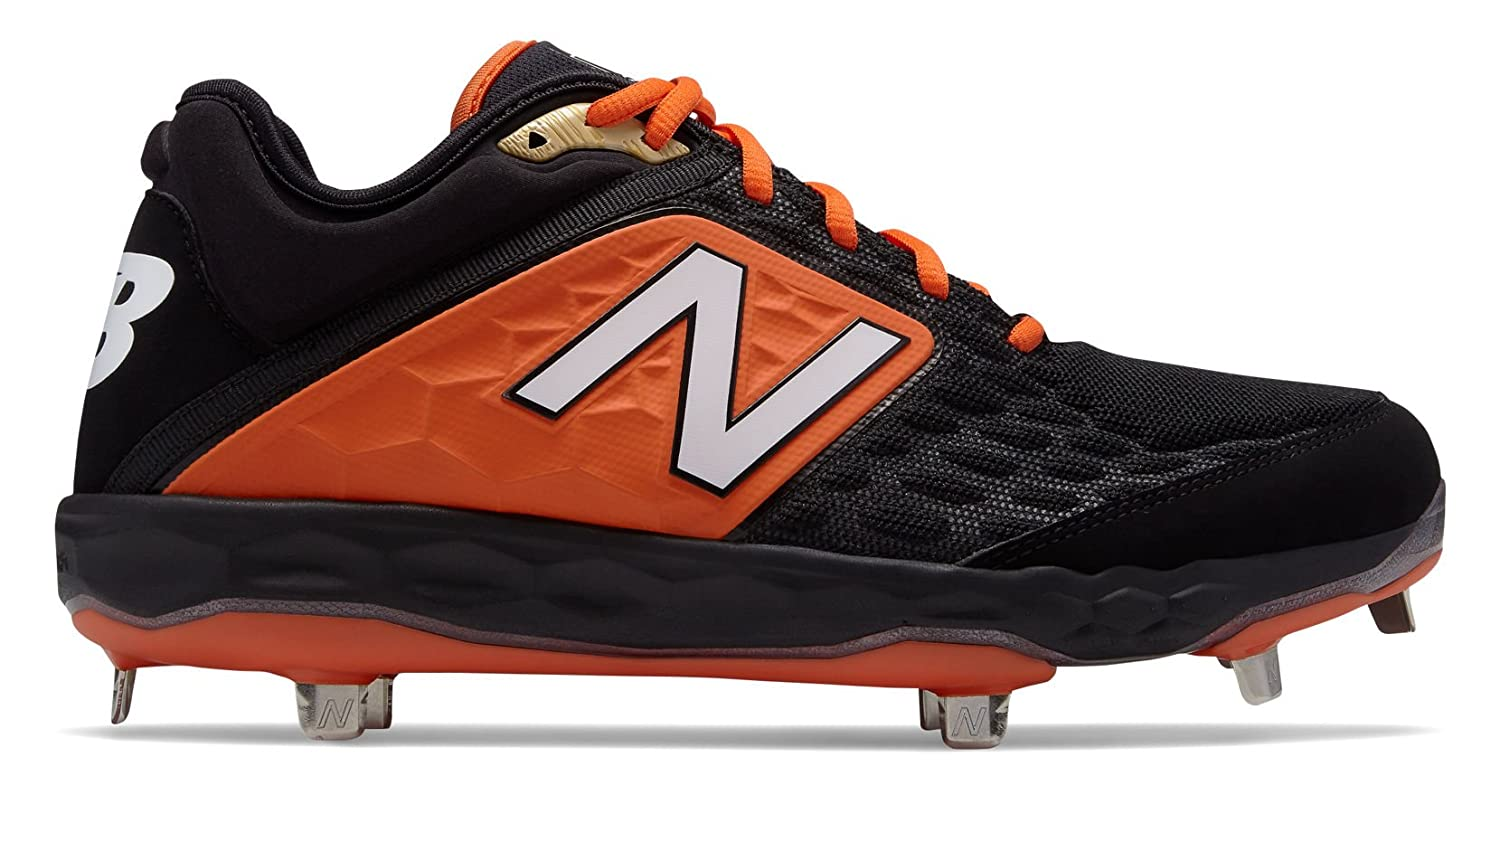 New Balance Men's 3000v4 Baseball Shoe B075R7LC2F 5.5 2E US|Black/Orange